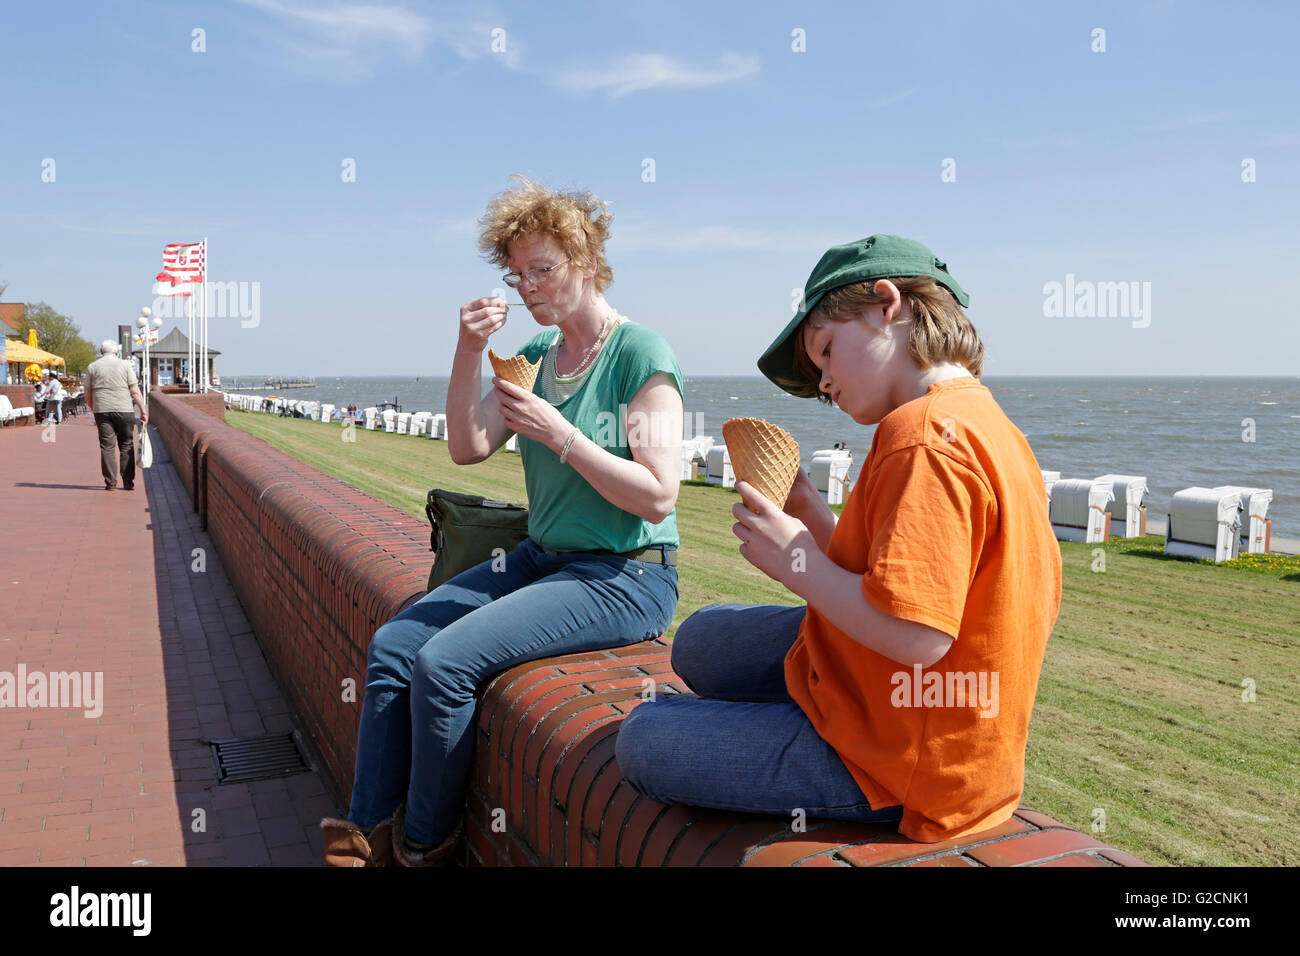 mother and son eating ice cream, seafront, South Beach, Wilhelmshaven, Lower Saxony, Germany - Stock Image